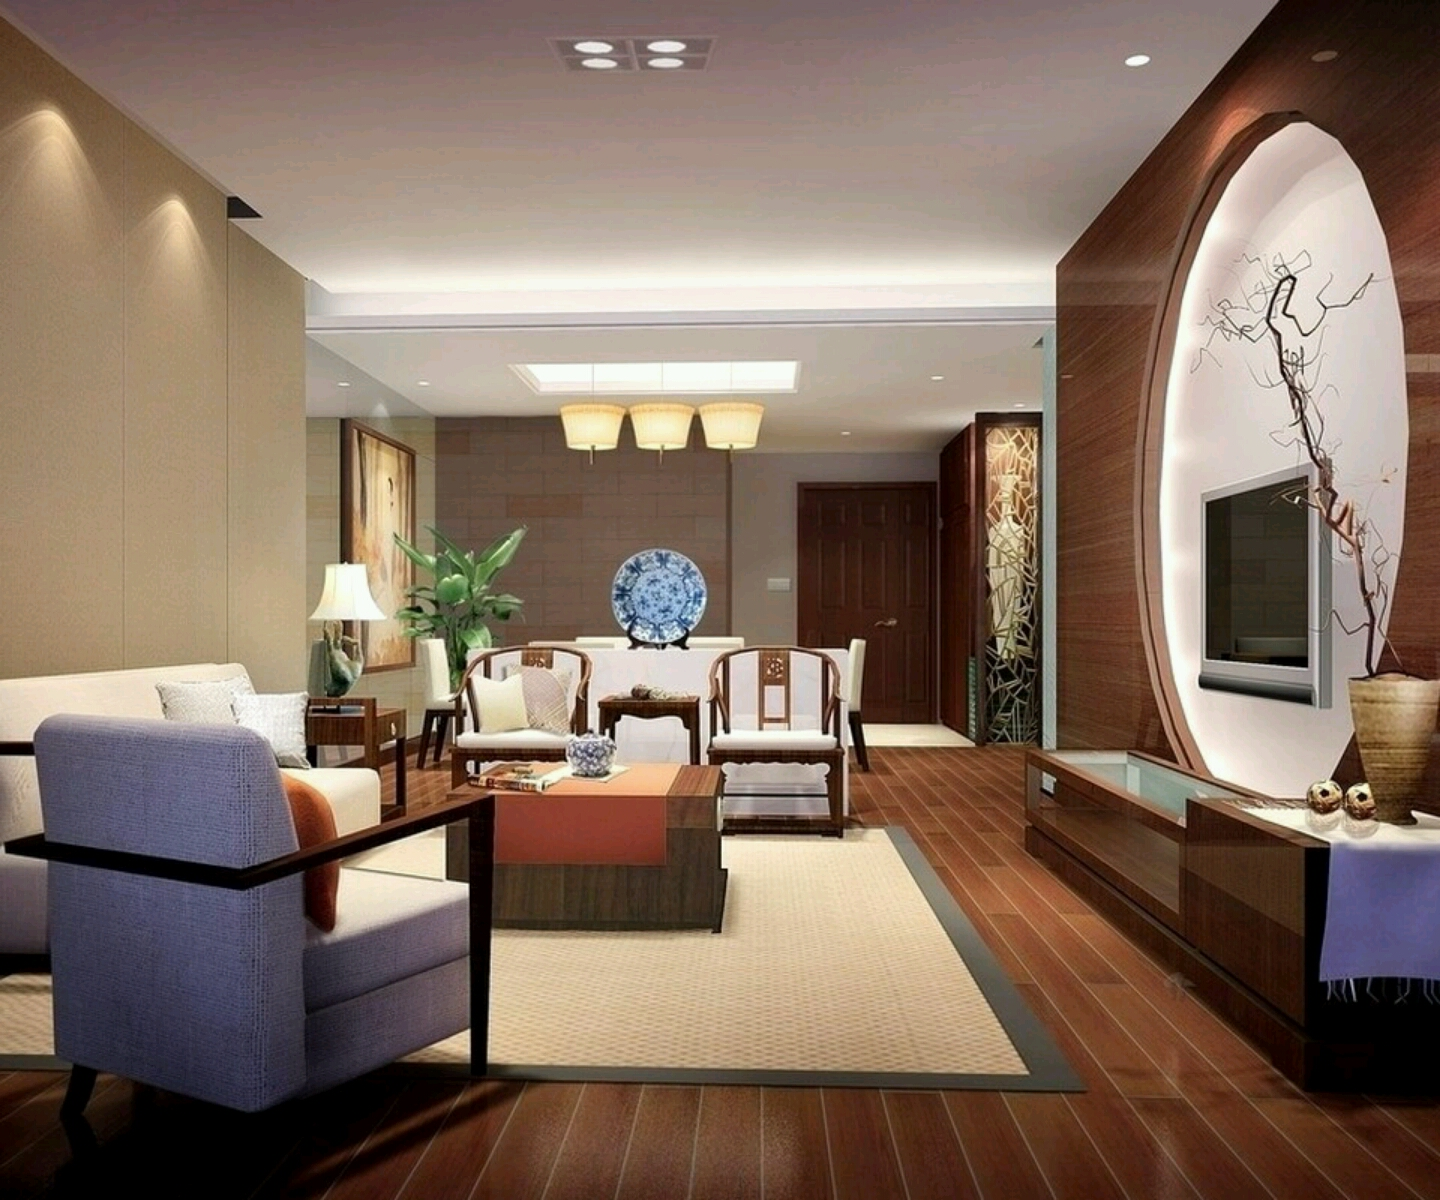 Interior design for living room mumbai 2017 2018 best Luxury design ideas